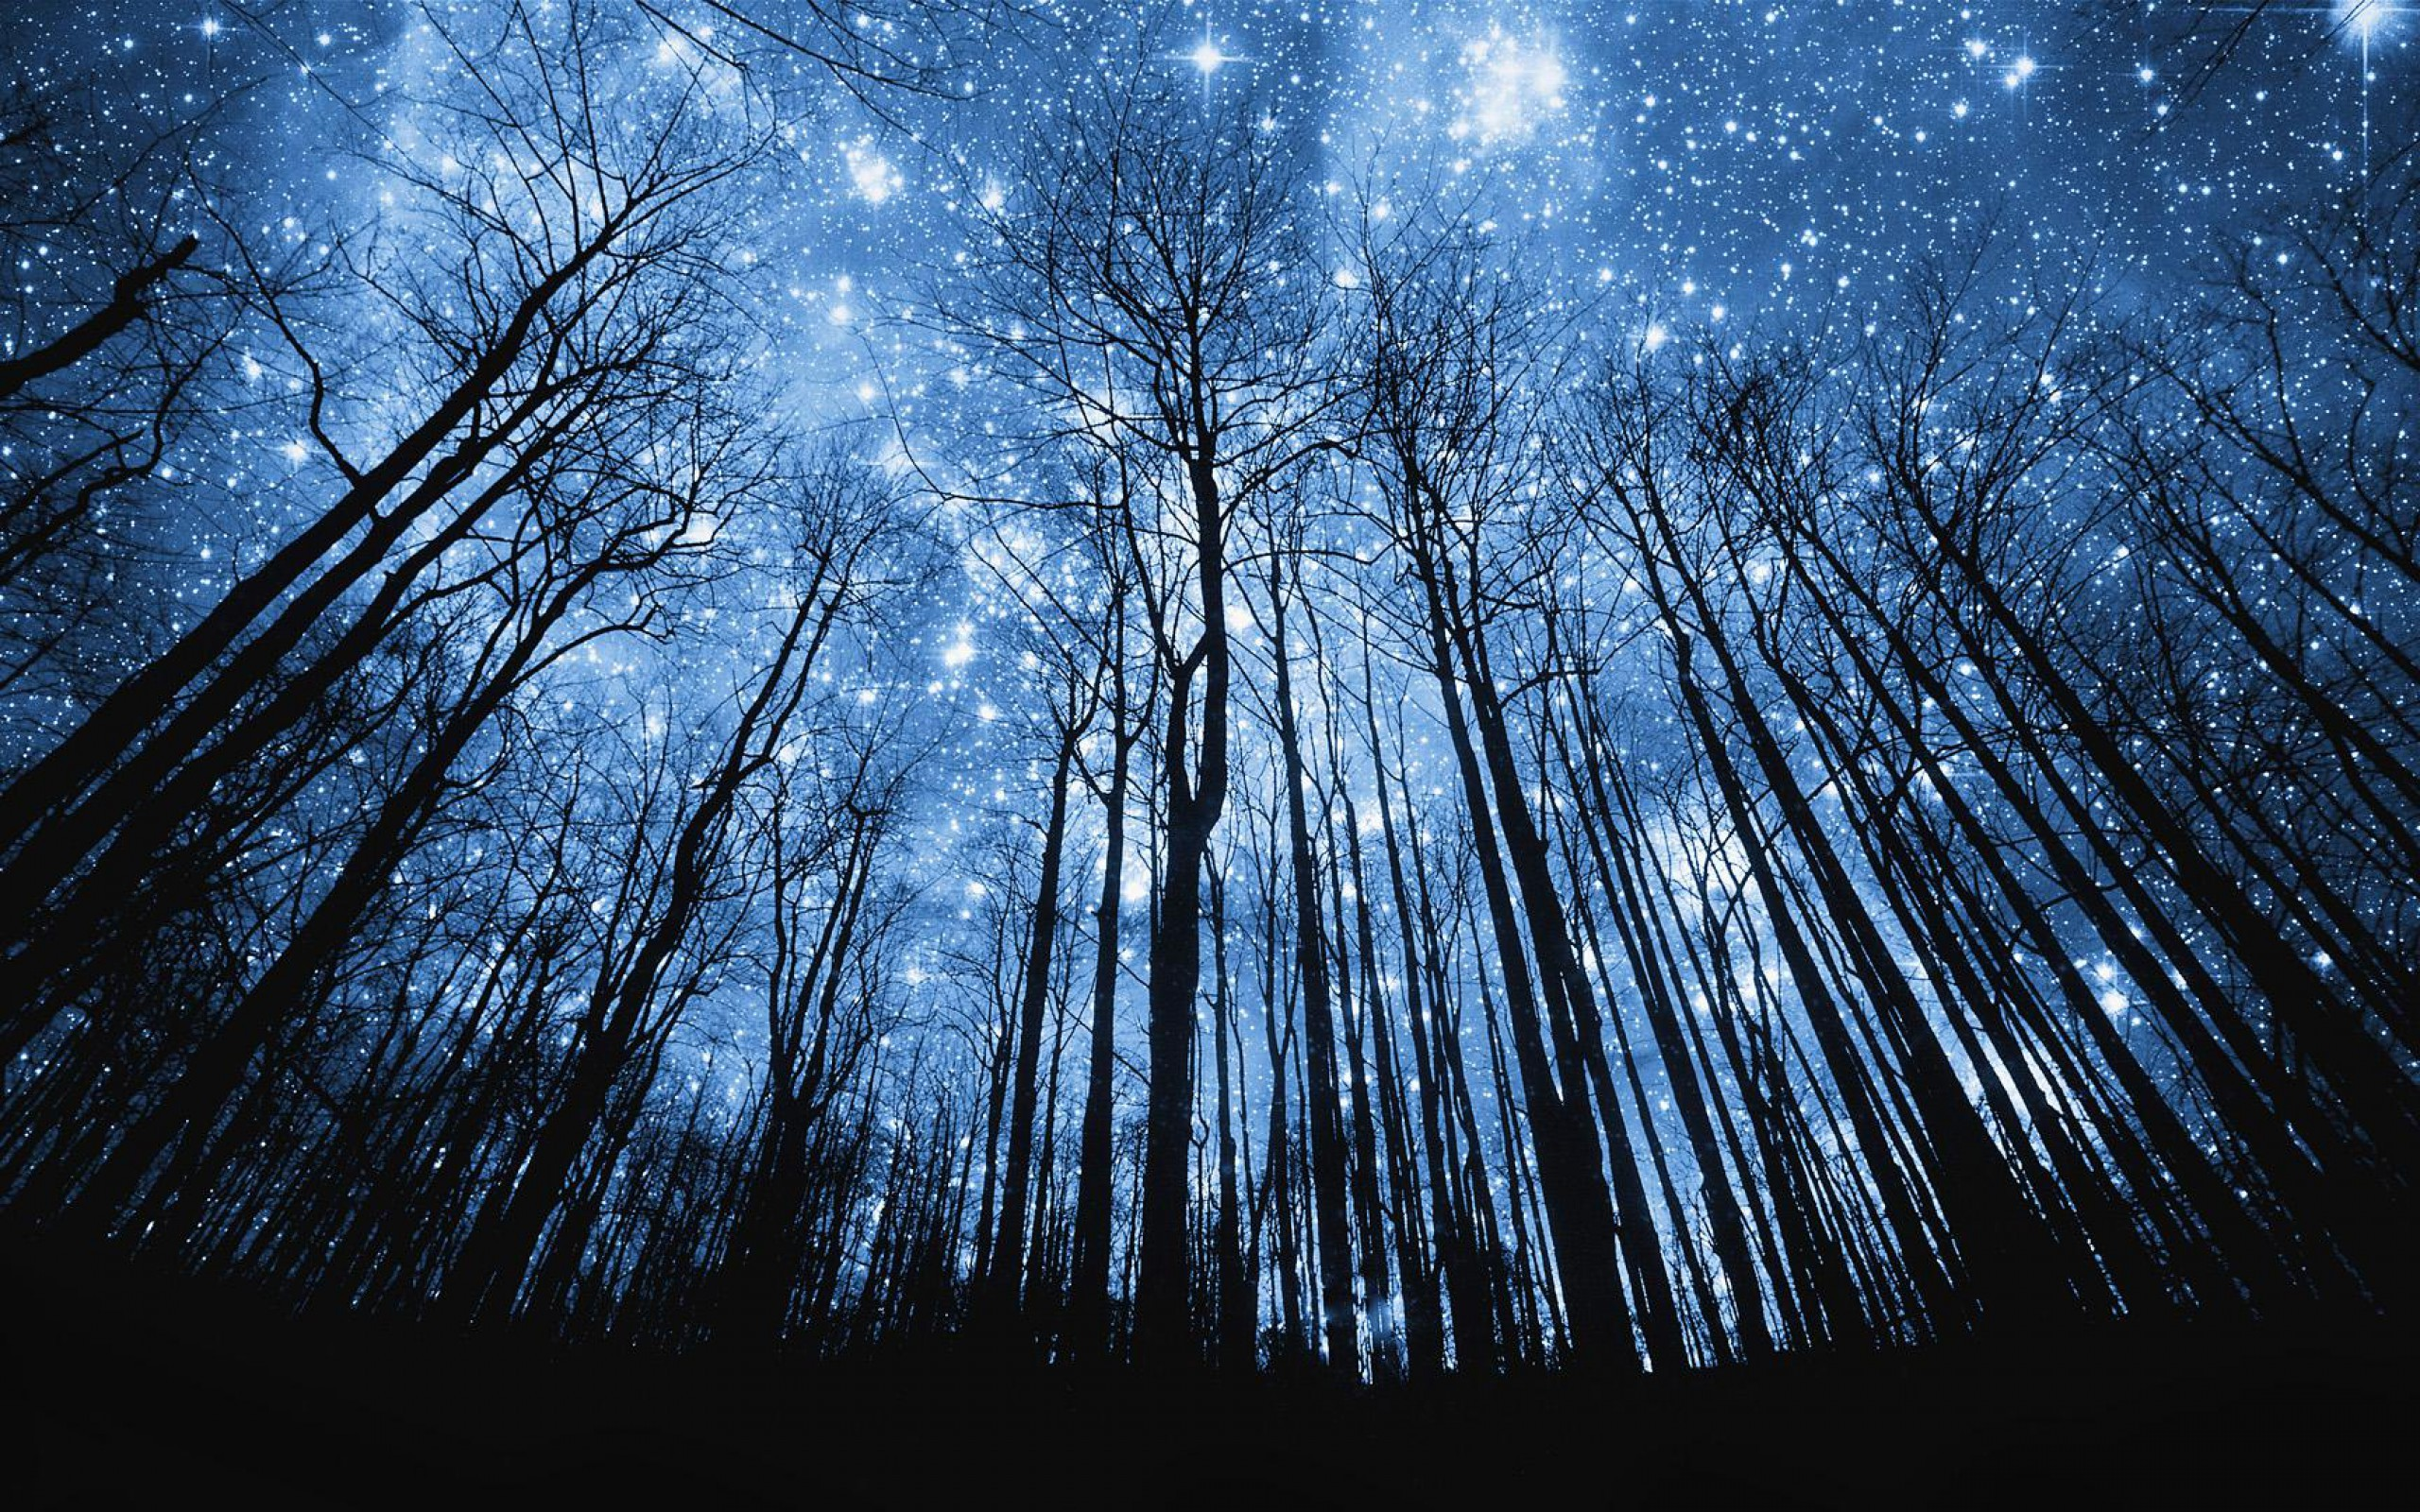 2560x1600 'photo-manipulation-starry-night-in-forest-wallpaper'